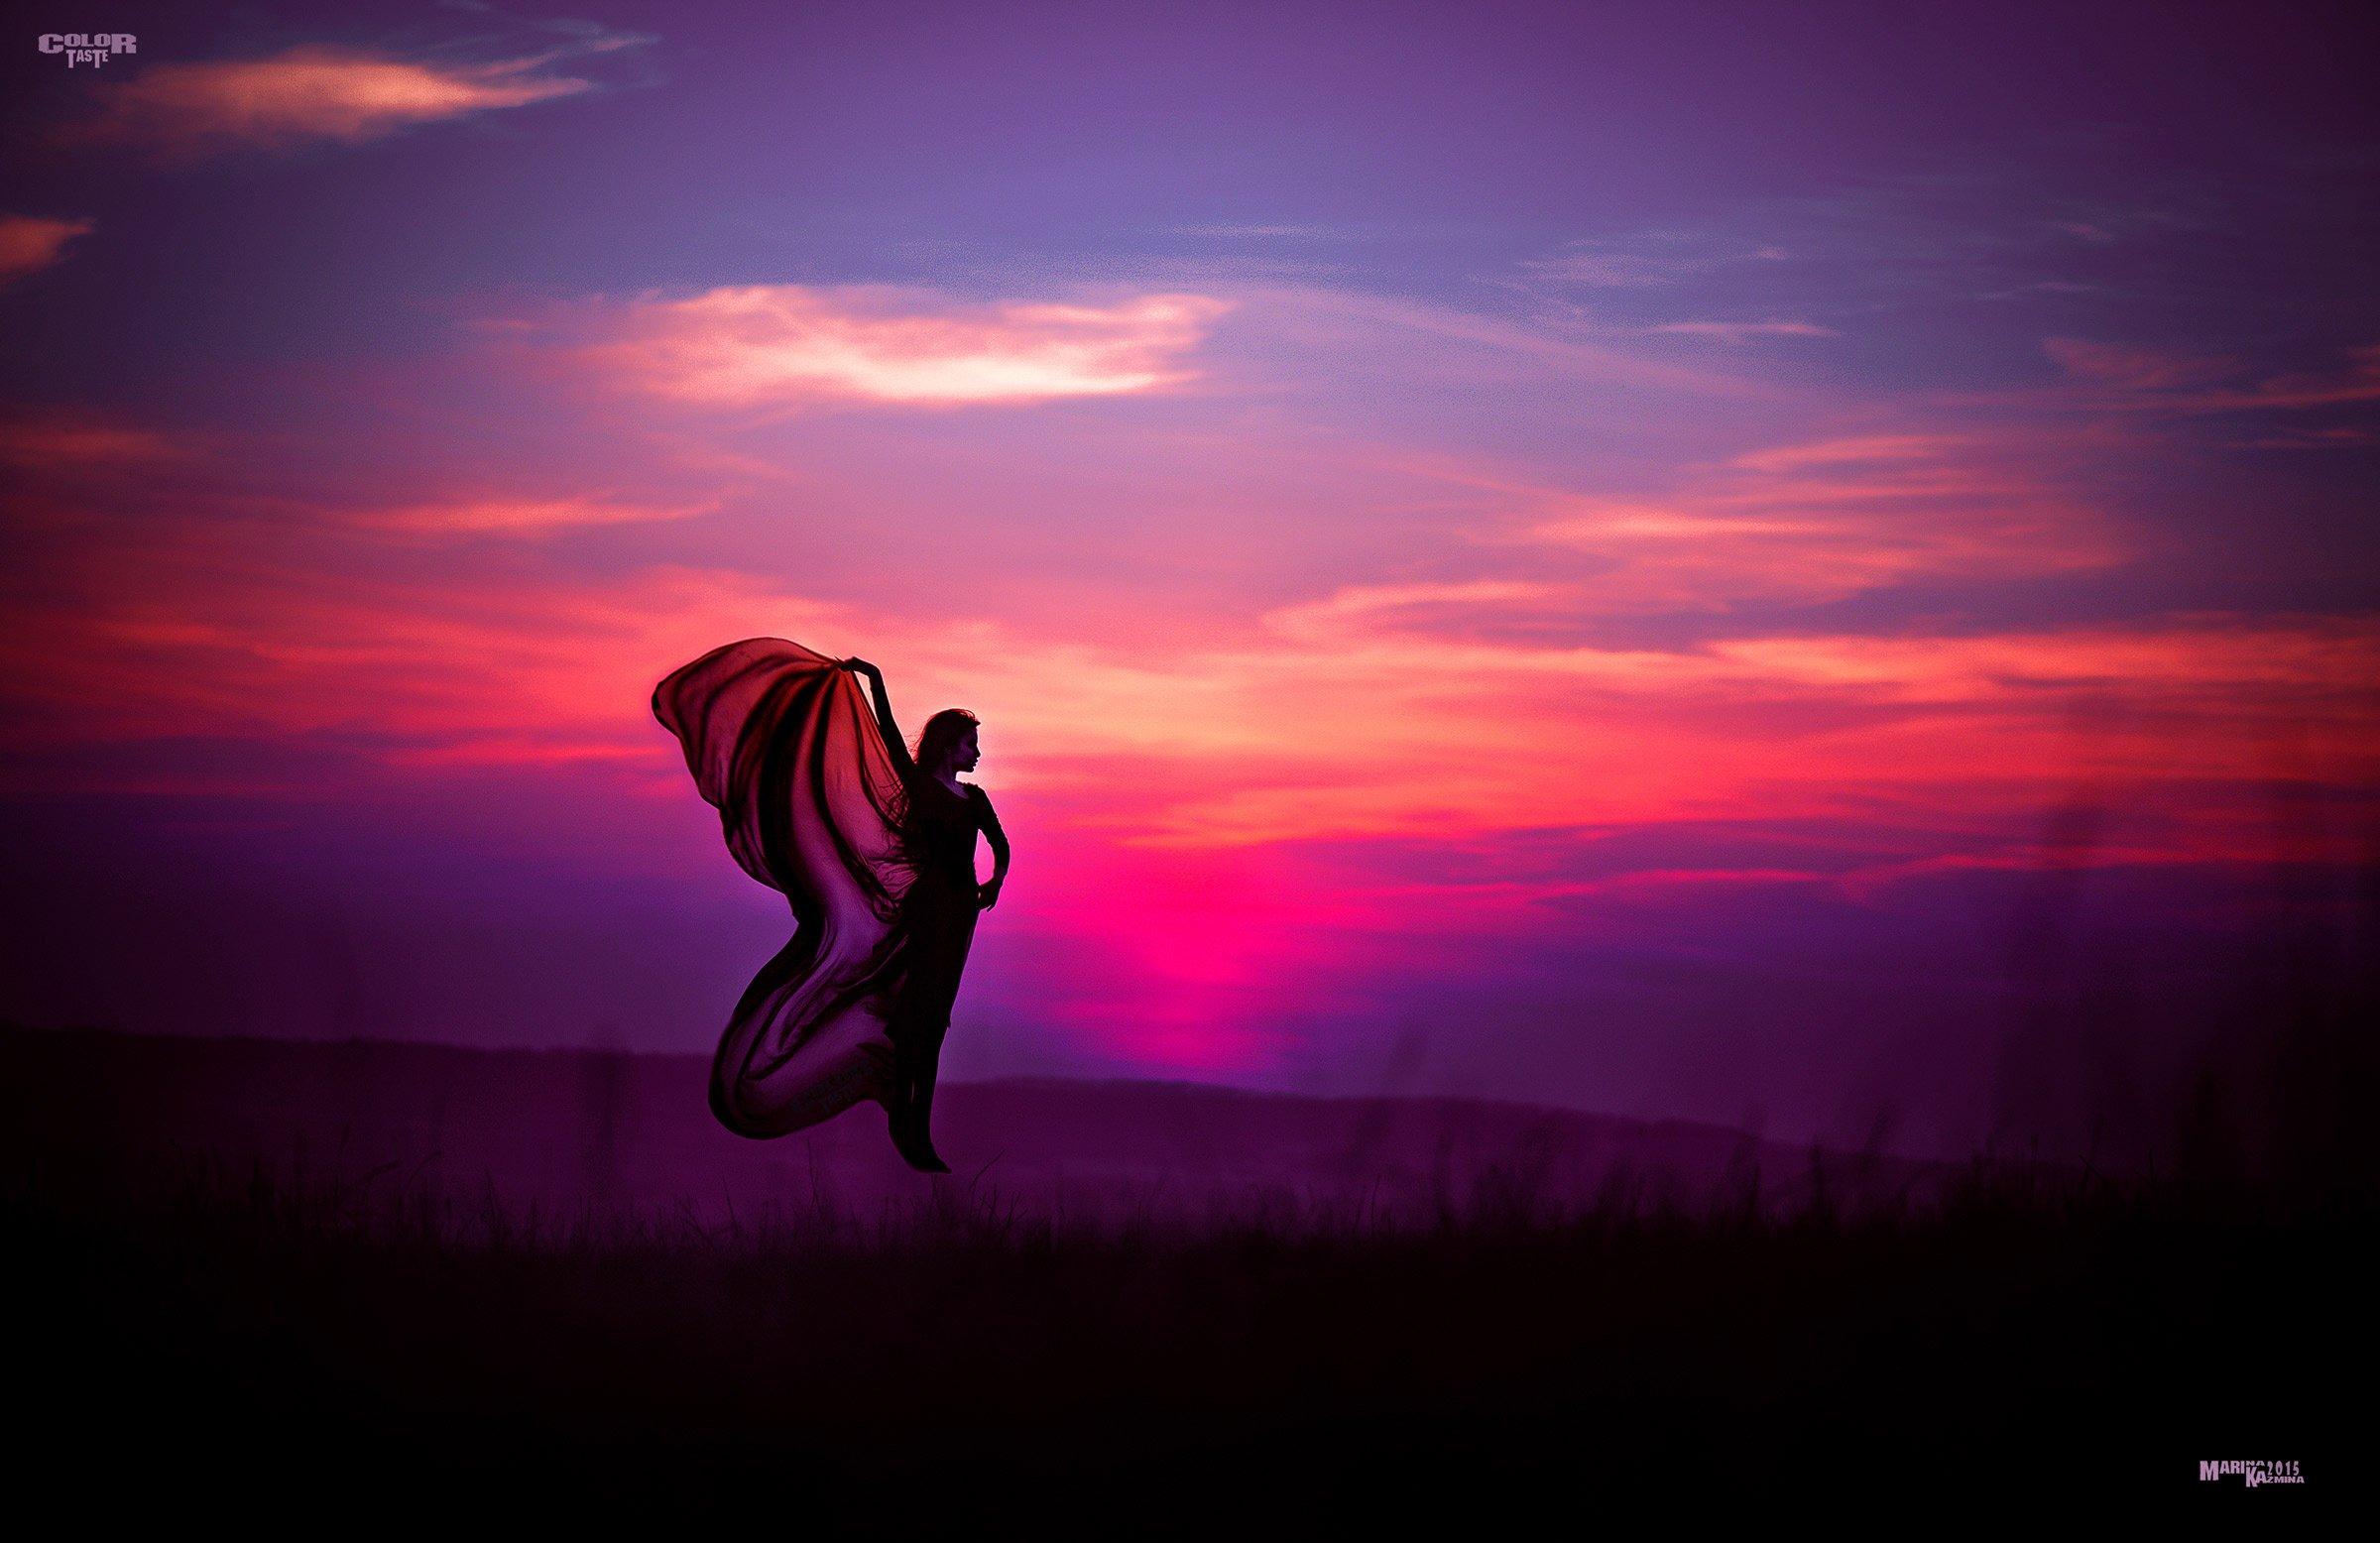 Field Sunset Dawn Woman Floating Levitation Mood Girl Wallpaper 2400x1556 848858 Wallpaperup